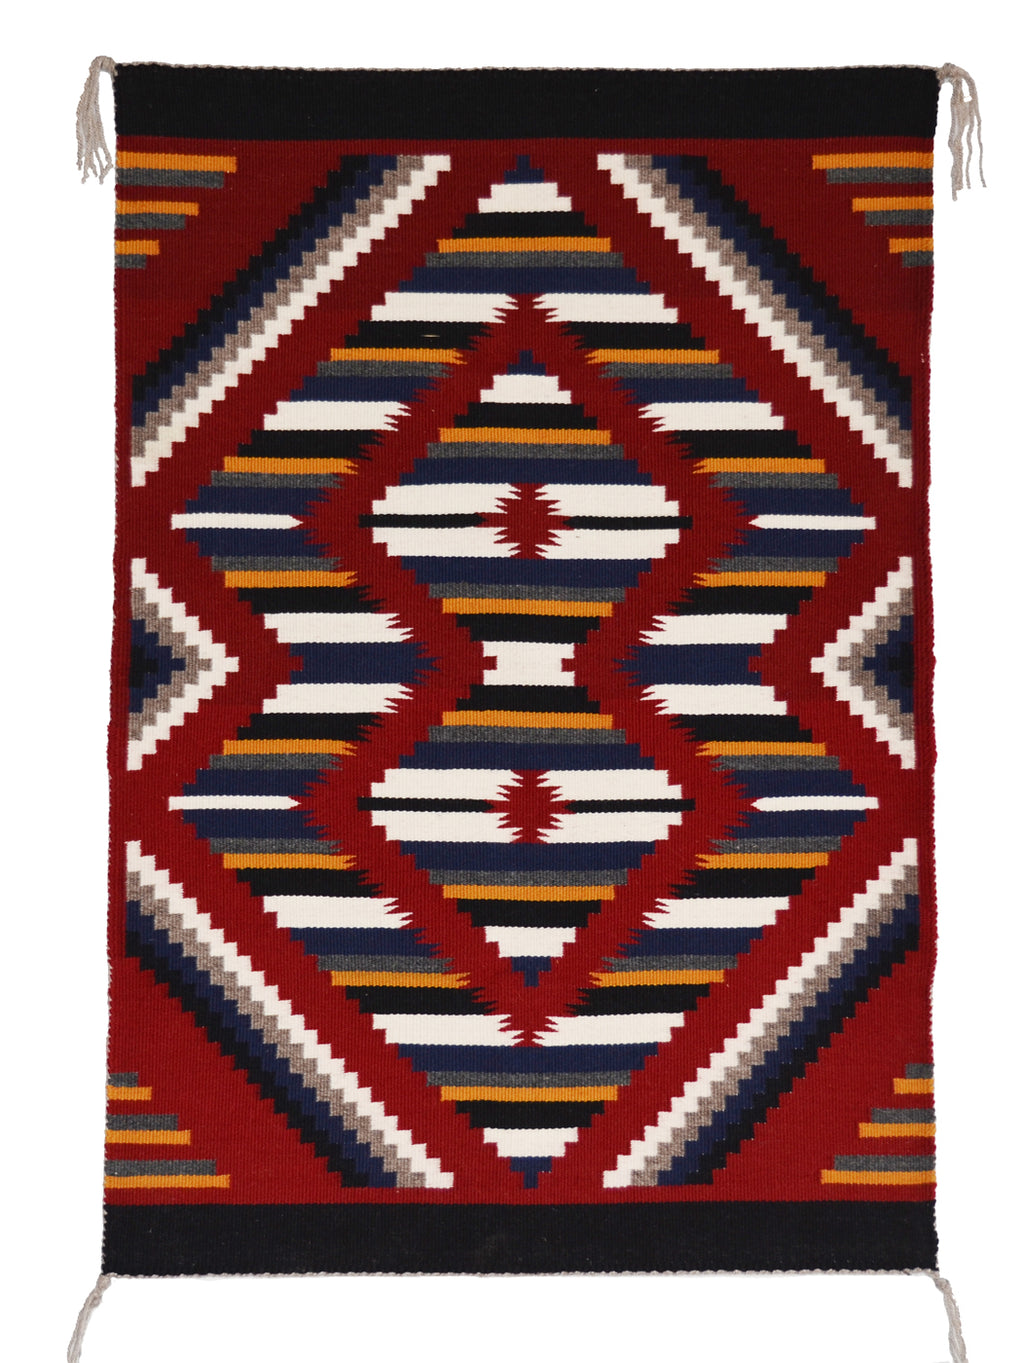 Navajo Chief Variant : Ruby Watchman : 3377 - Getzwiller's Nizhoni Ranch Gallery